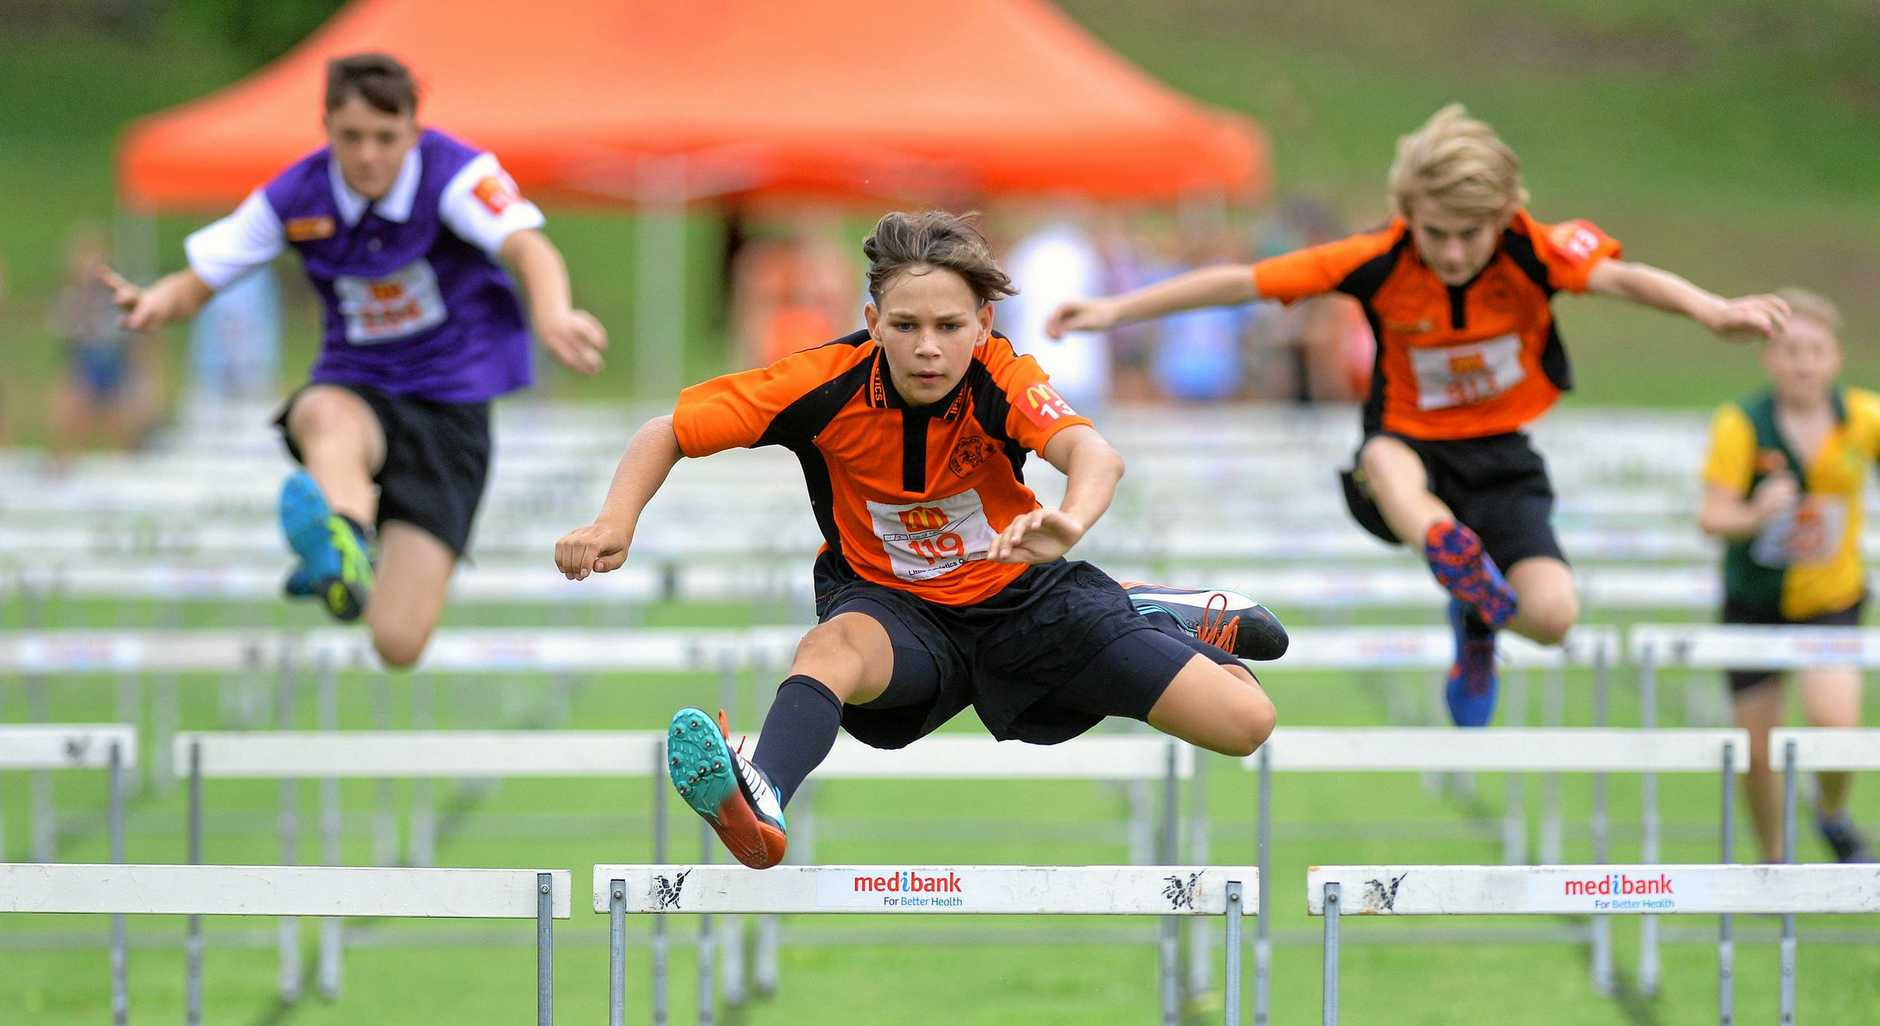 All the action from the Little Athletics twilight meet held at Bill Paterson Oval on Saturday afternoon. #119 Caleb Law